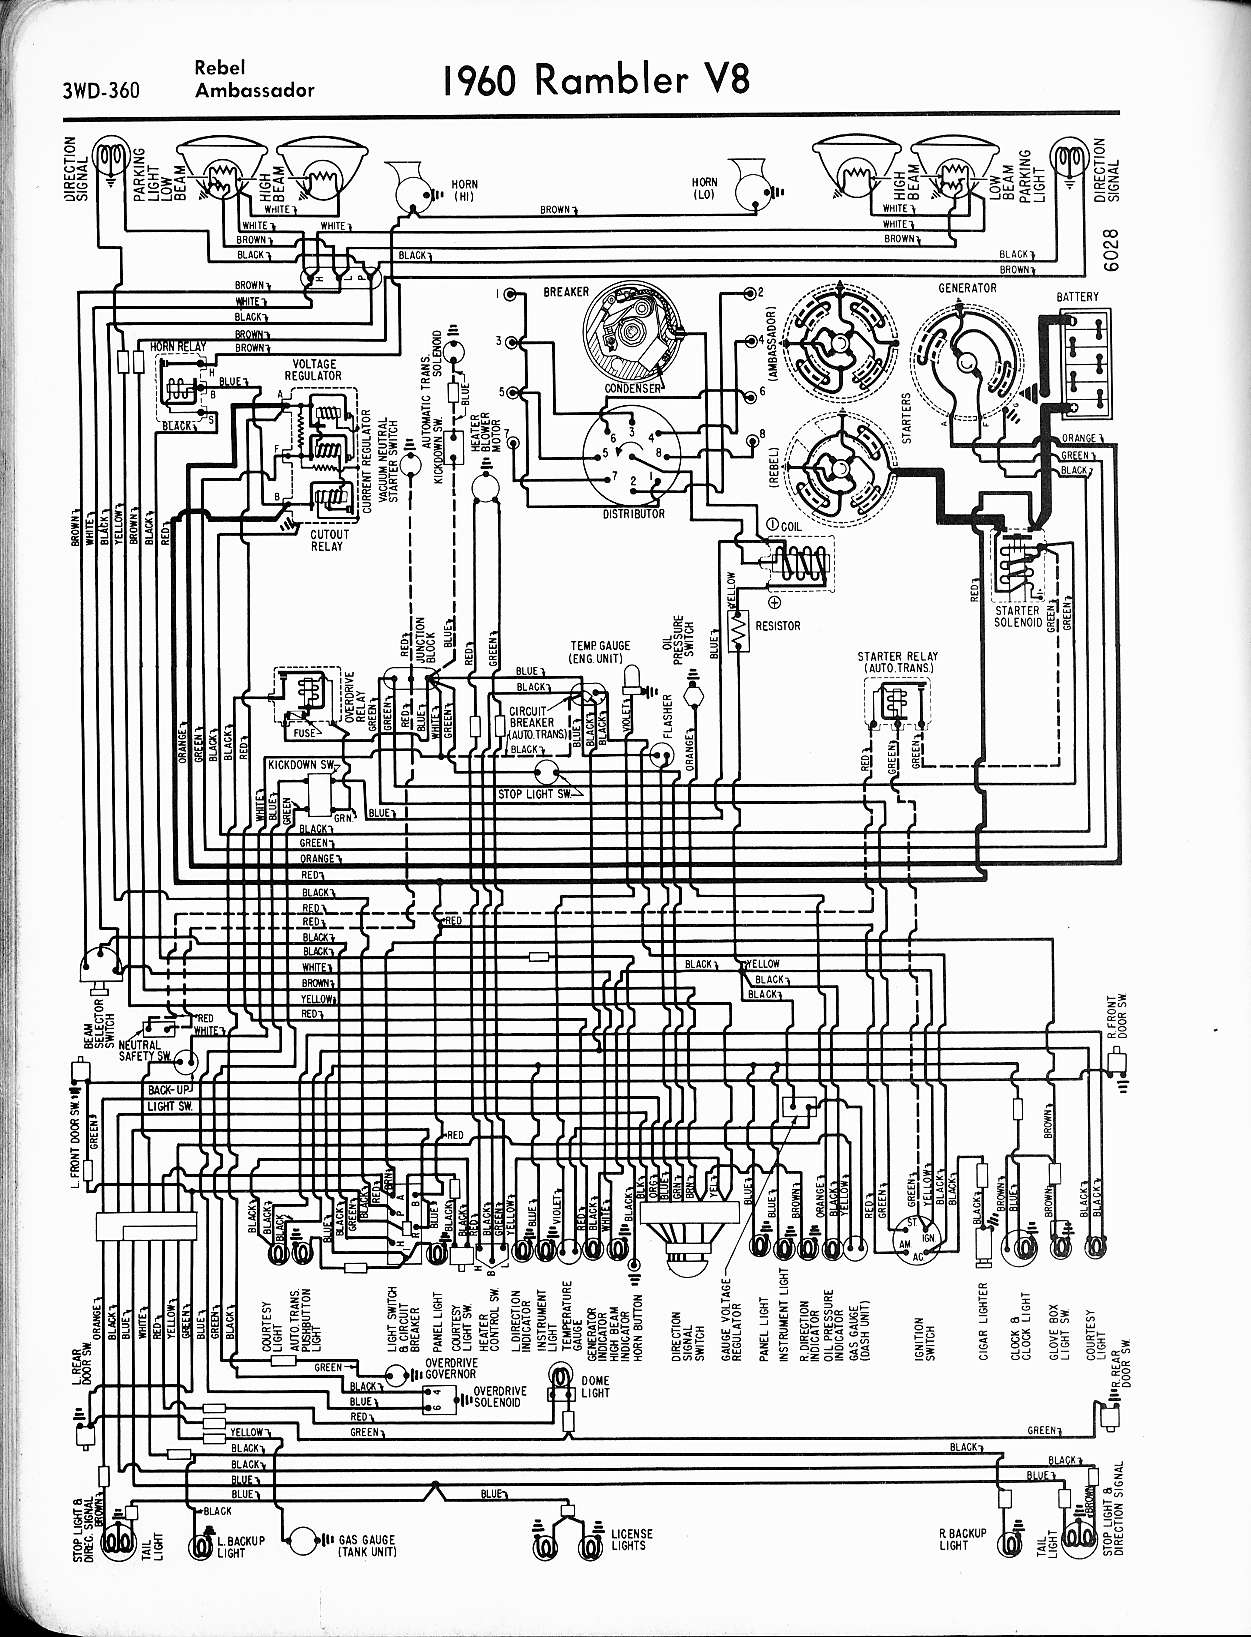 rambler wiring diagrams the old car manual project rh oldcarmanualproject com 1968 AMC Rambler Rebel SST 1967 AMC Rebel